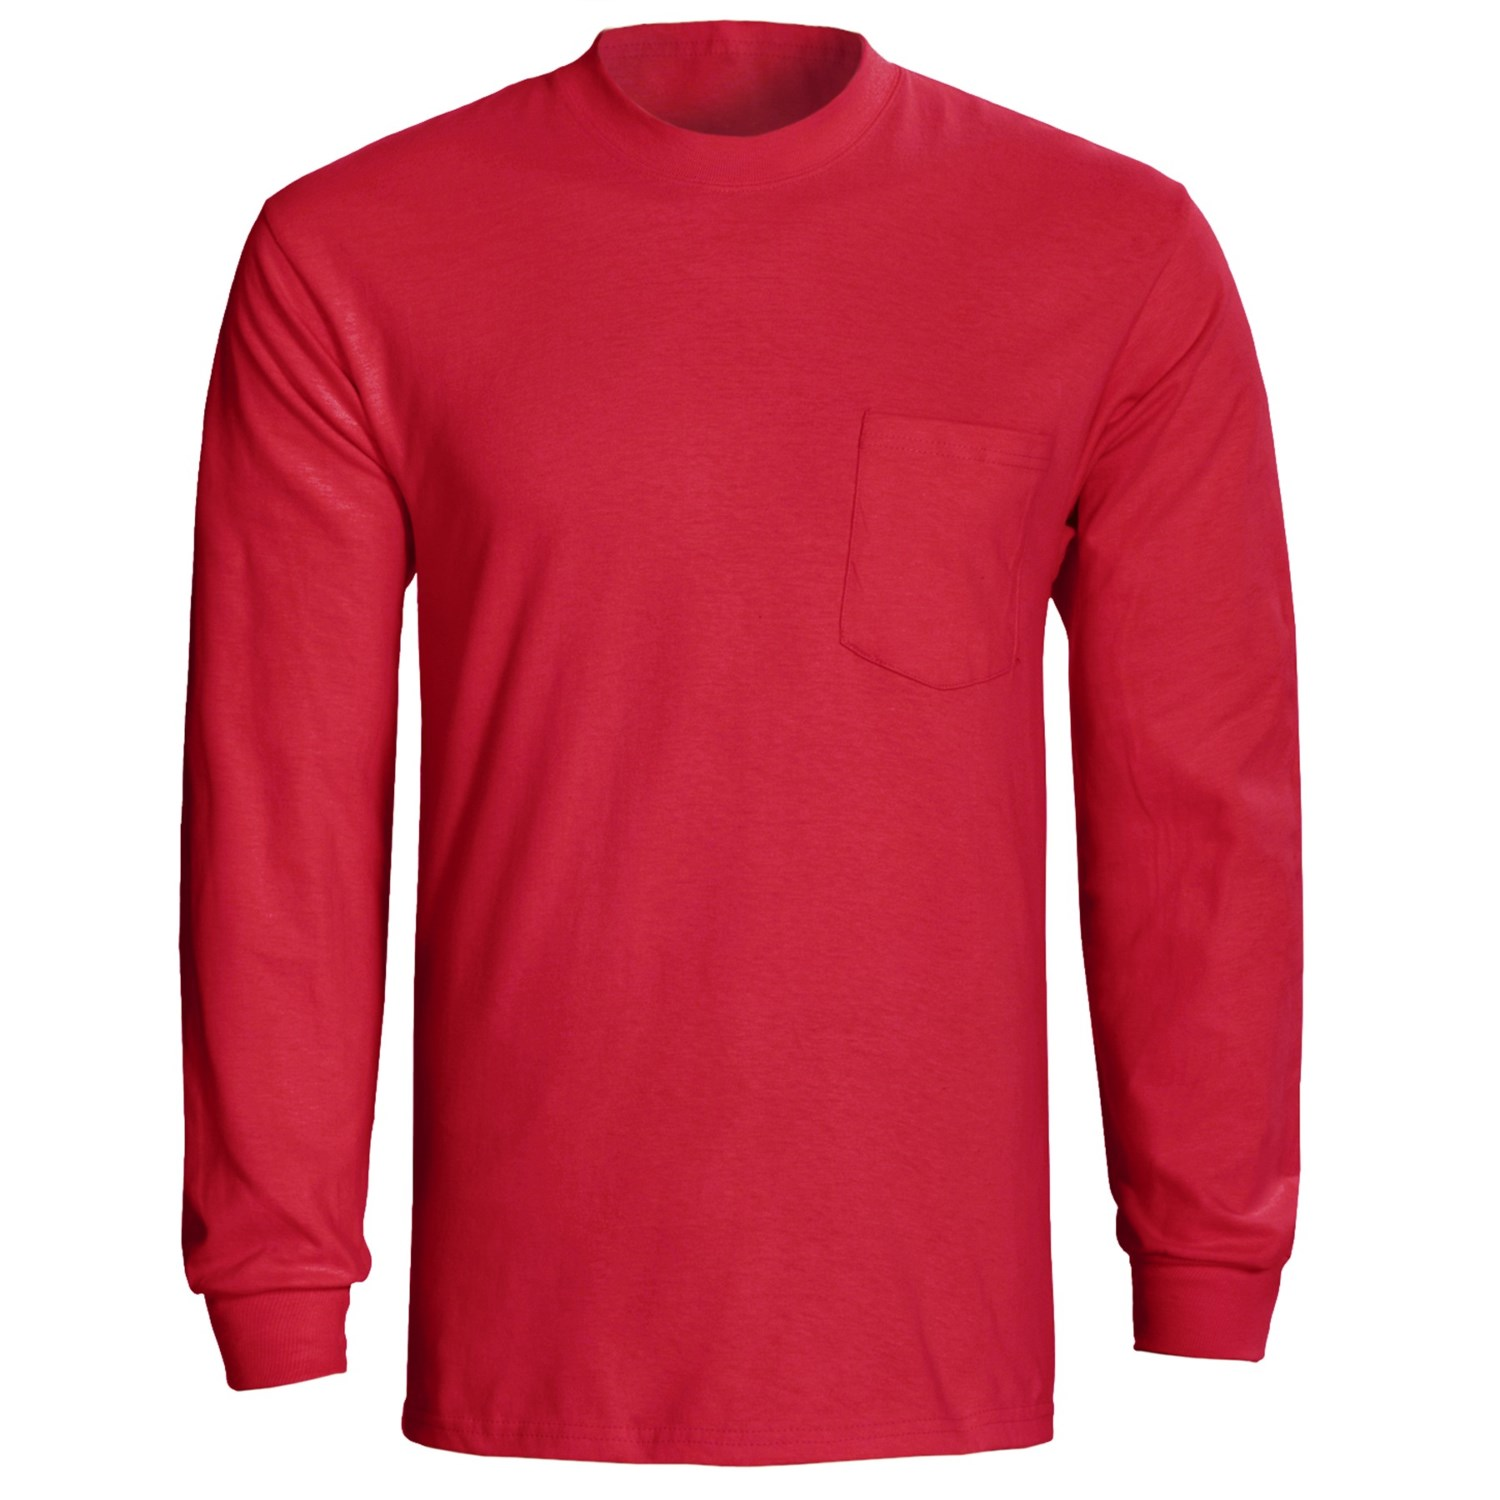 Hanes Tagless Pocket T Shirt Long Sleeve For Men And